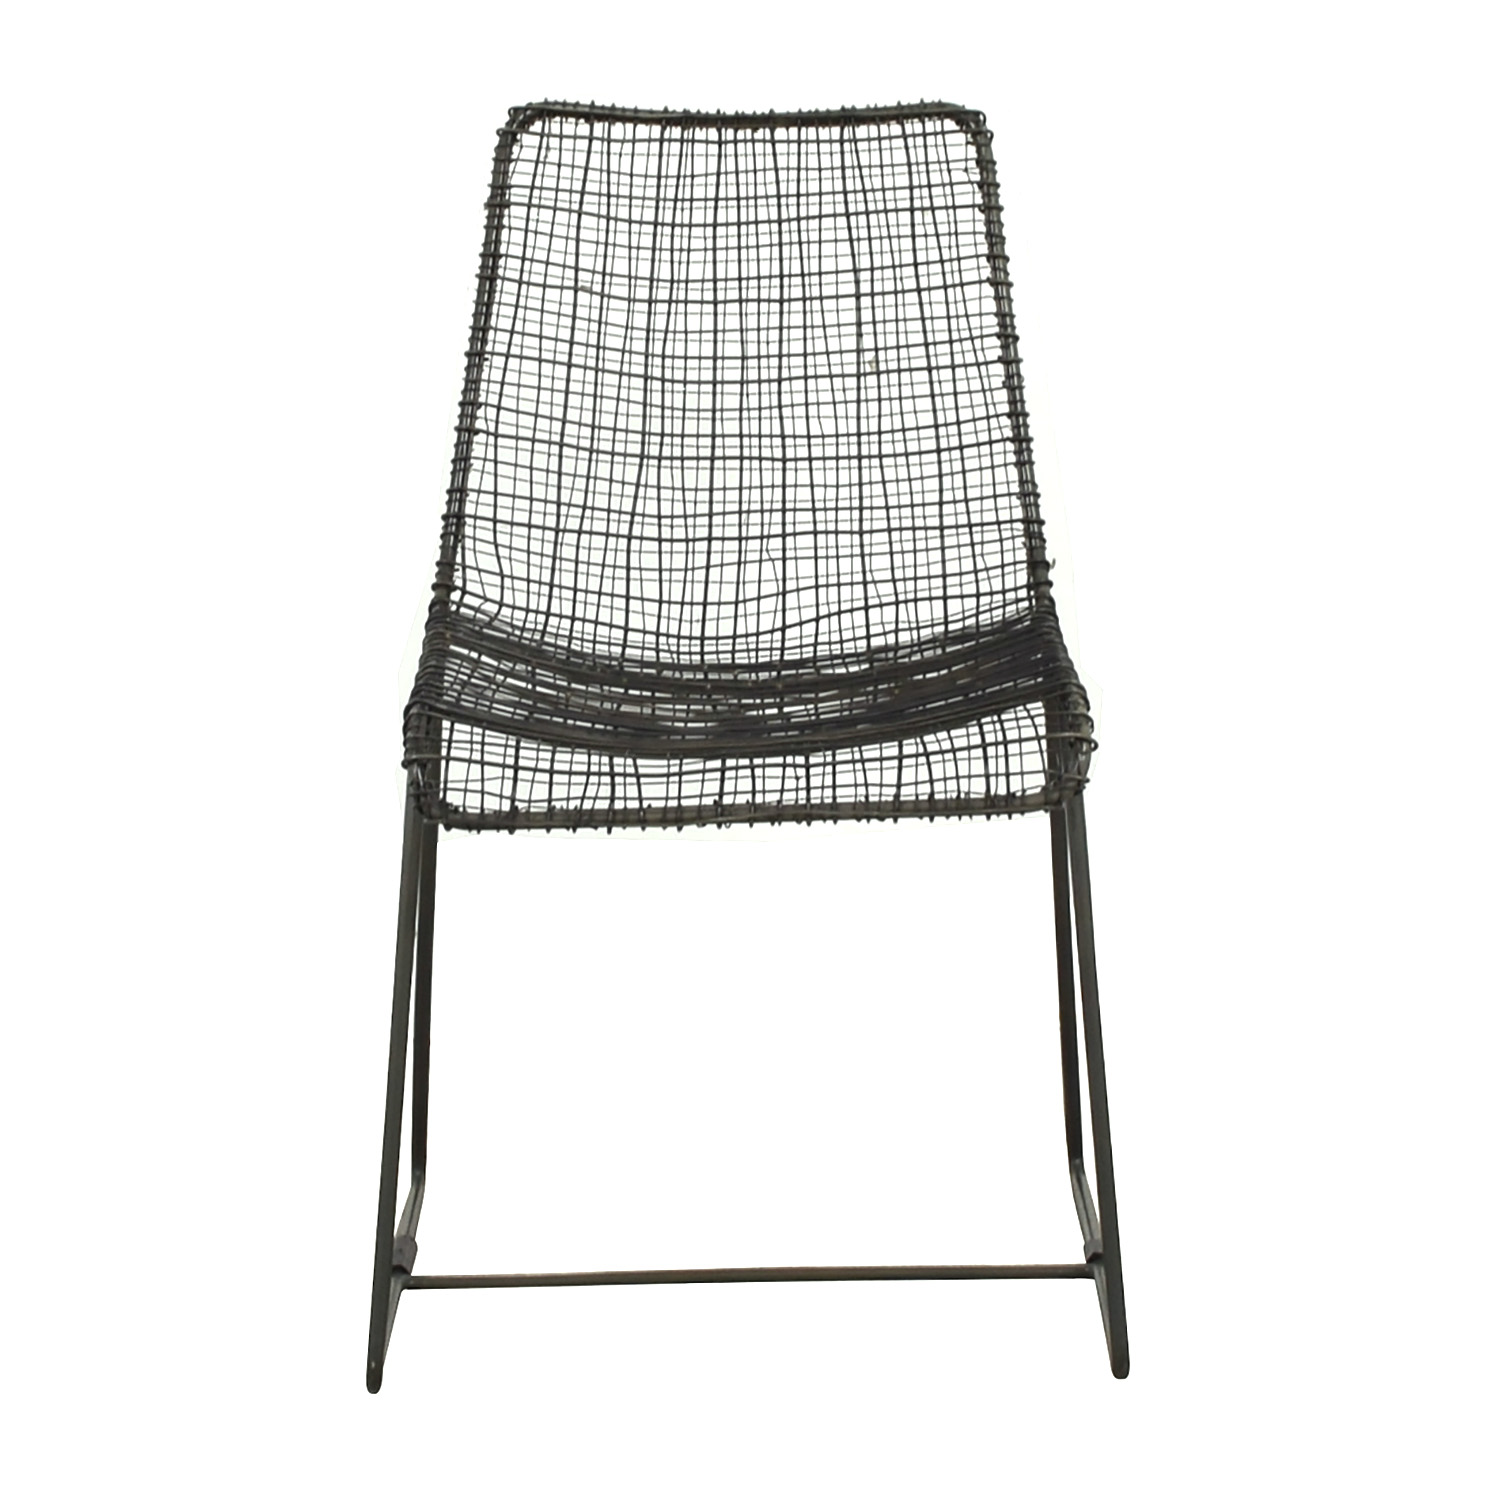 CB2 CB2 Charcoal Wire Chair second hand